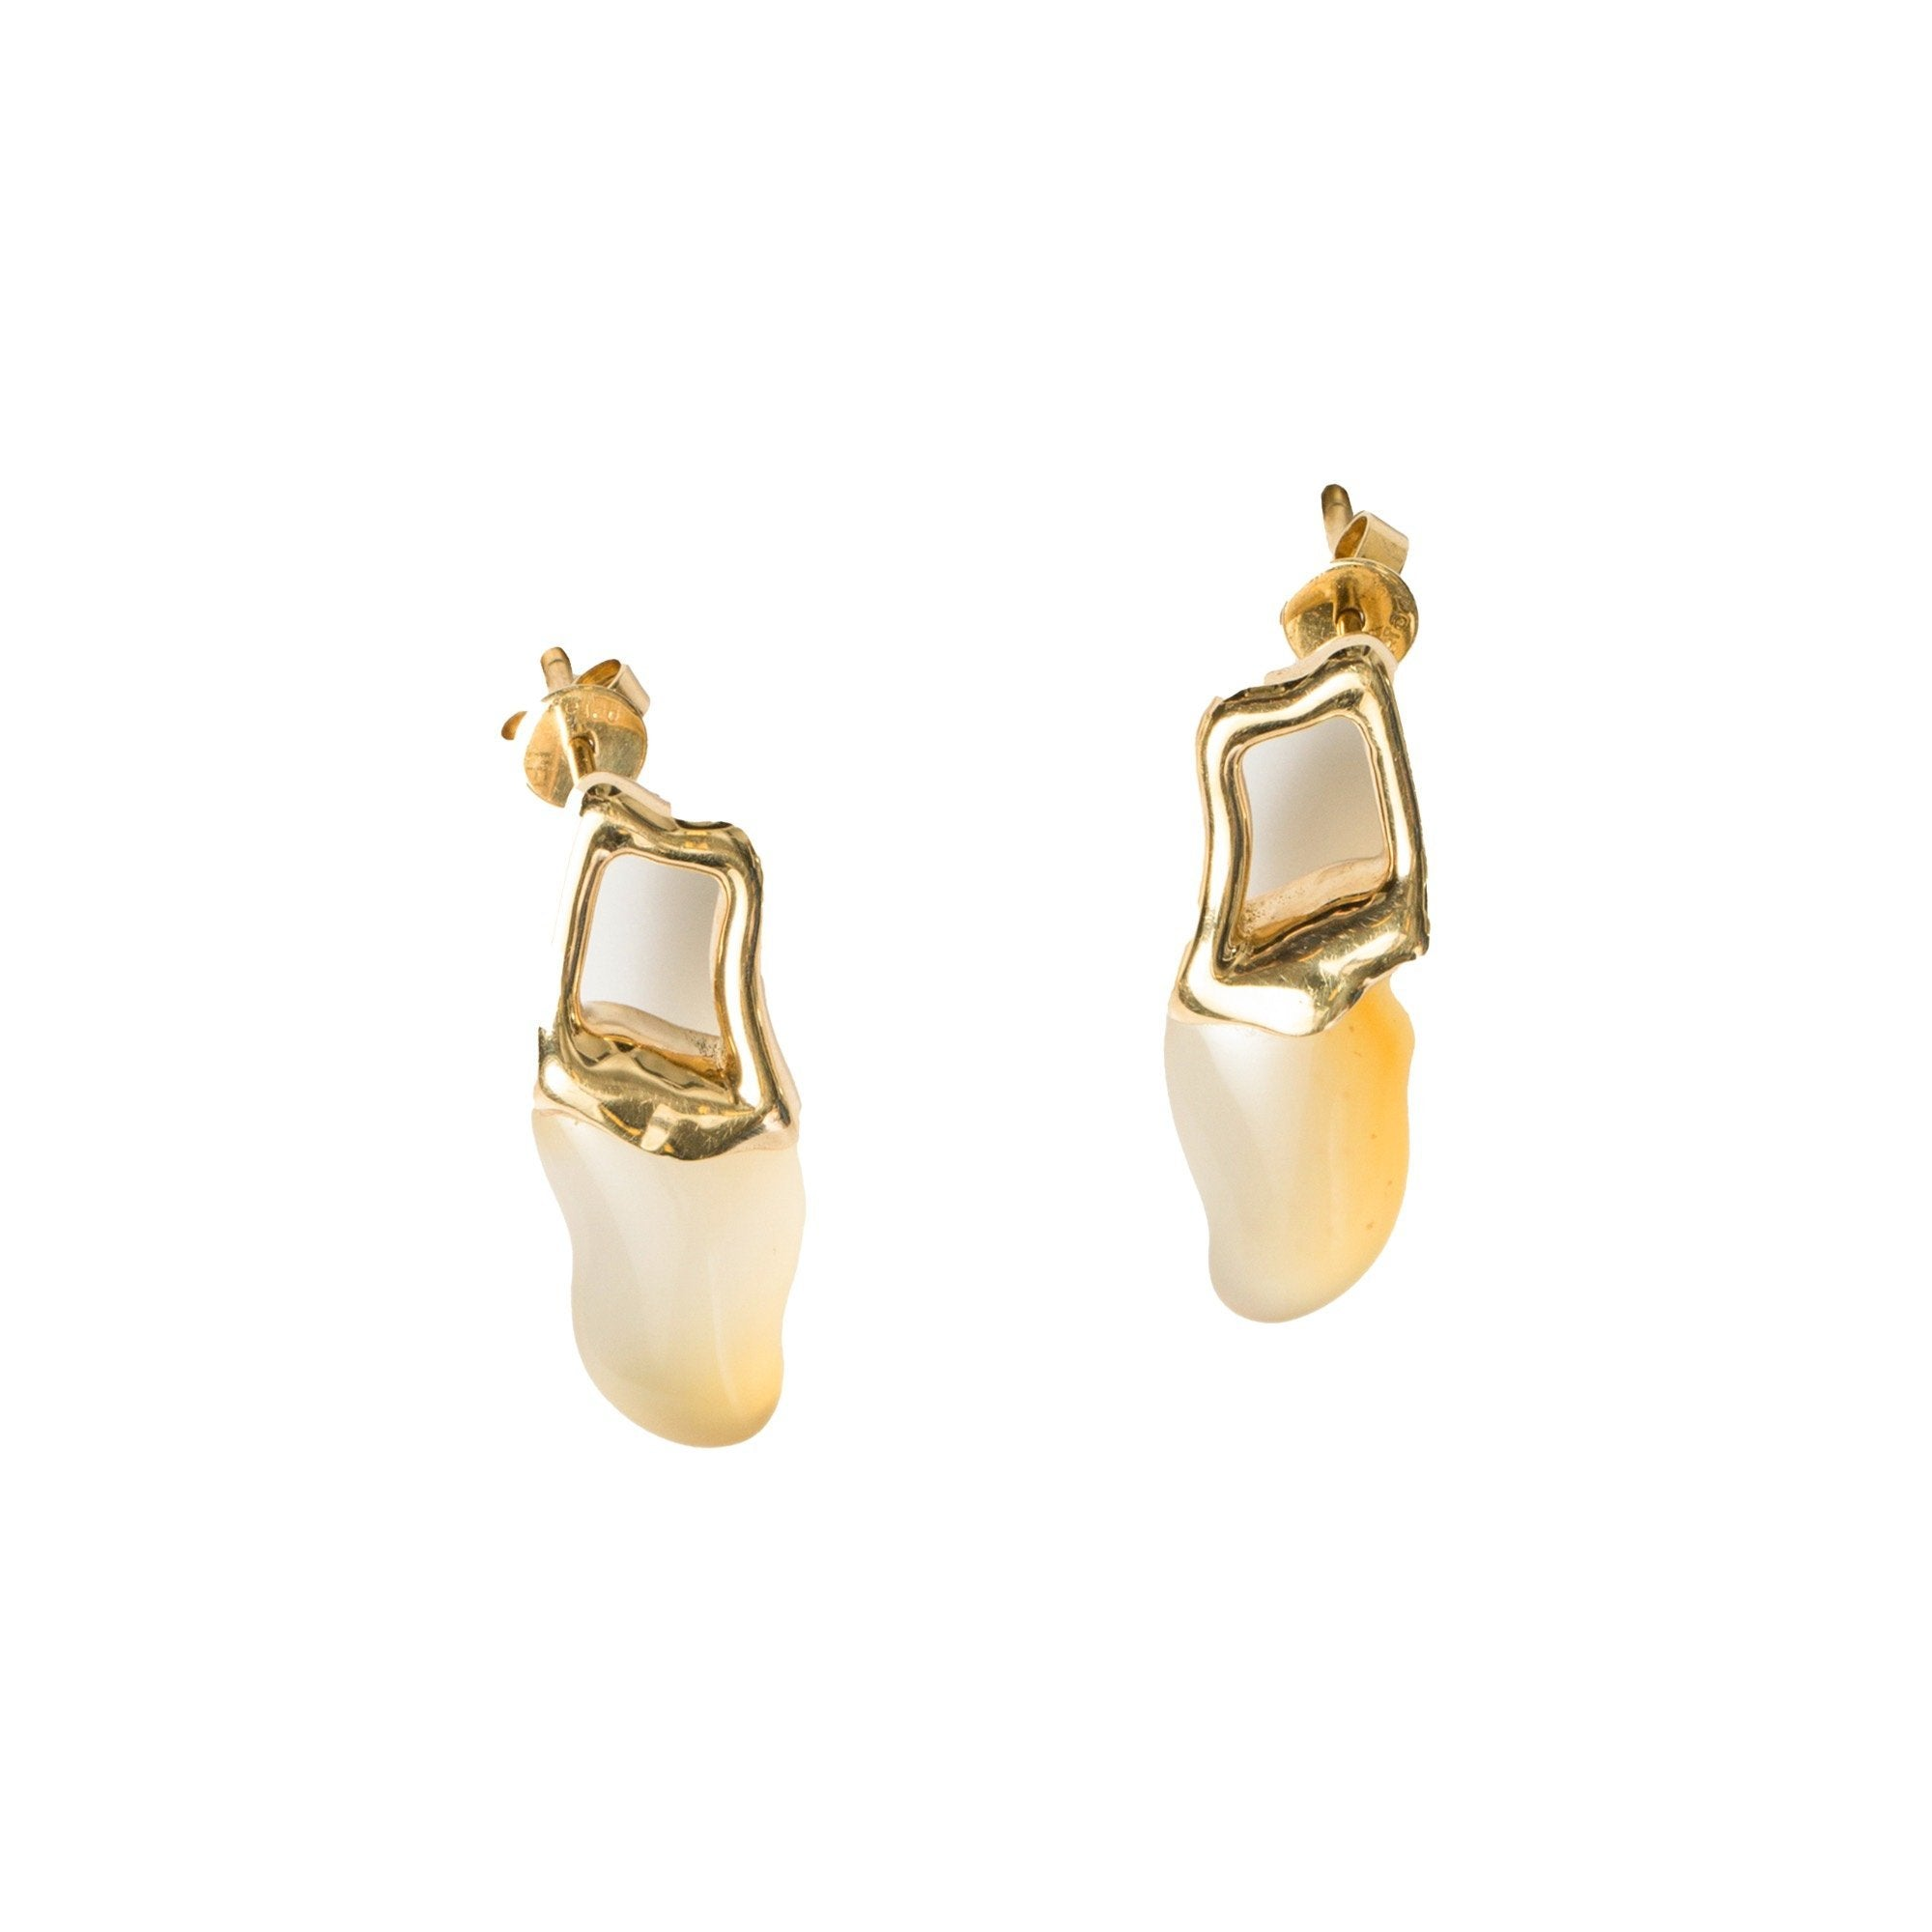 L'ELEMENTO 'Water Collection' Golden Agate Earrings | MADA IN CHINA